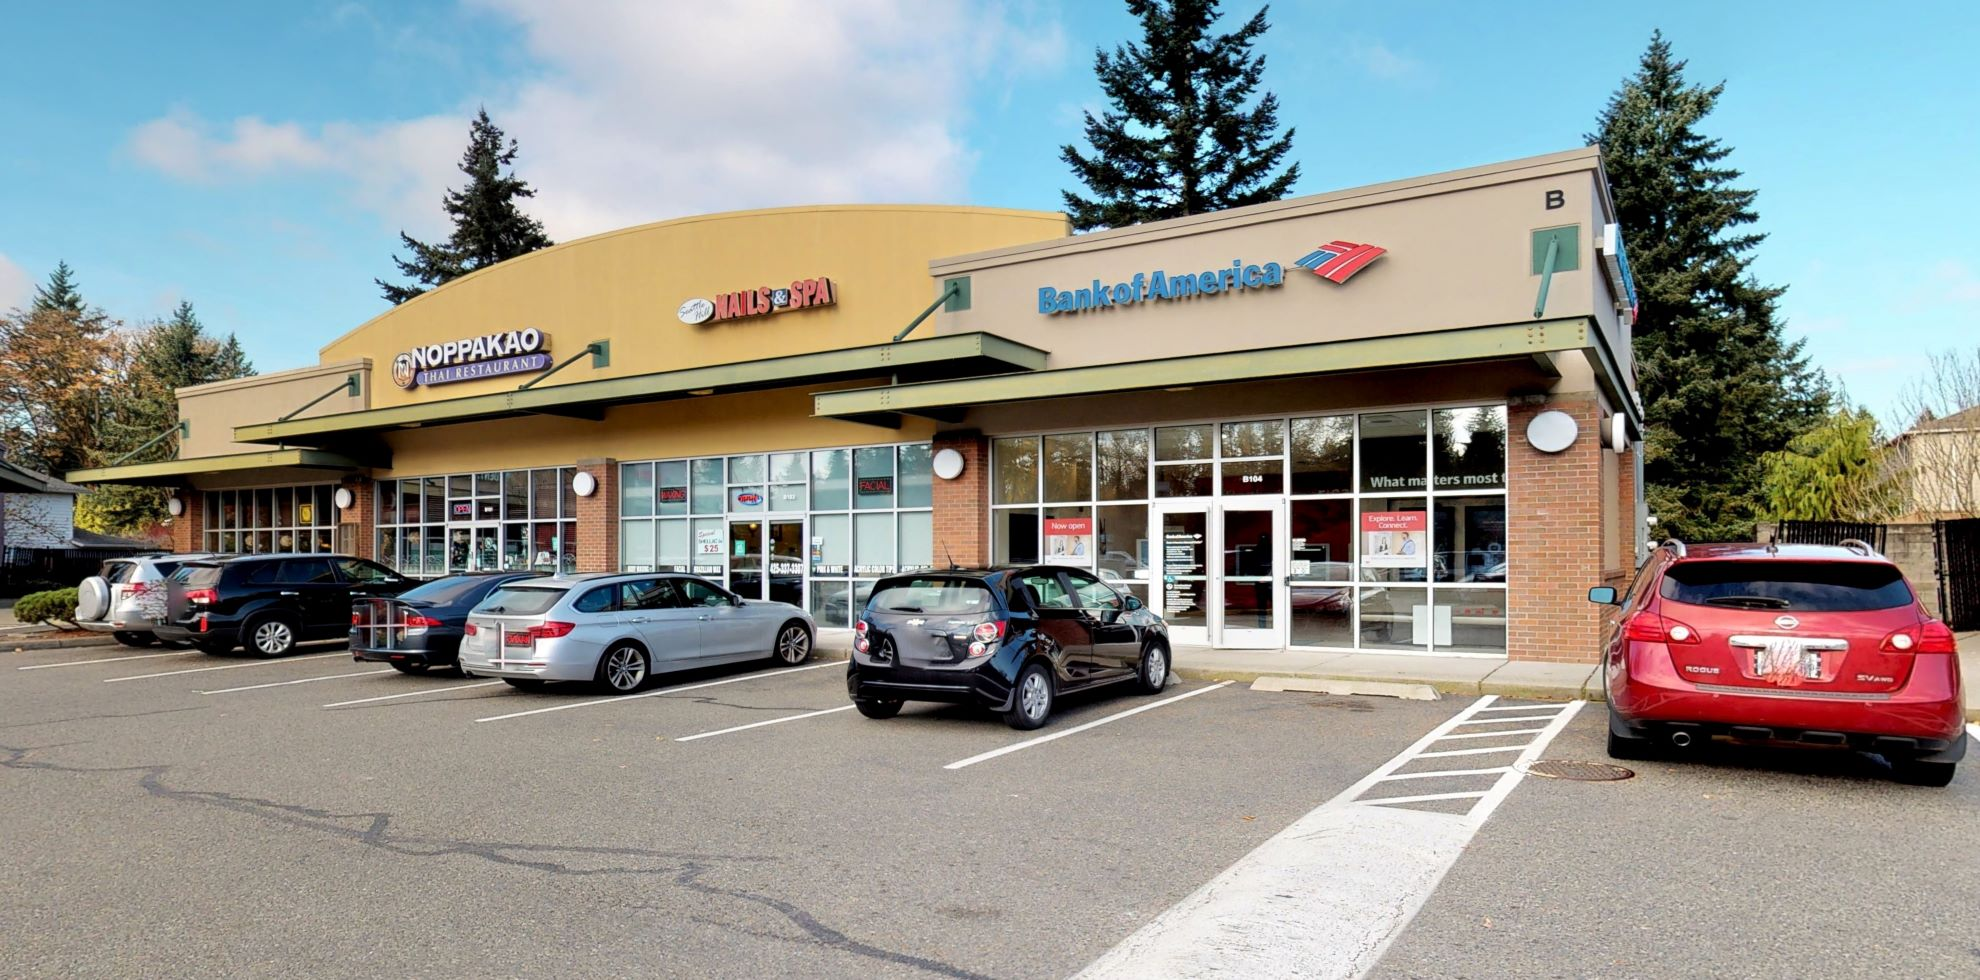 Bank of America Advanced Center with walk-up ATM   4809 132nd St SE, Everett, WA 98208